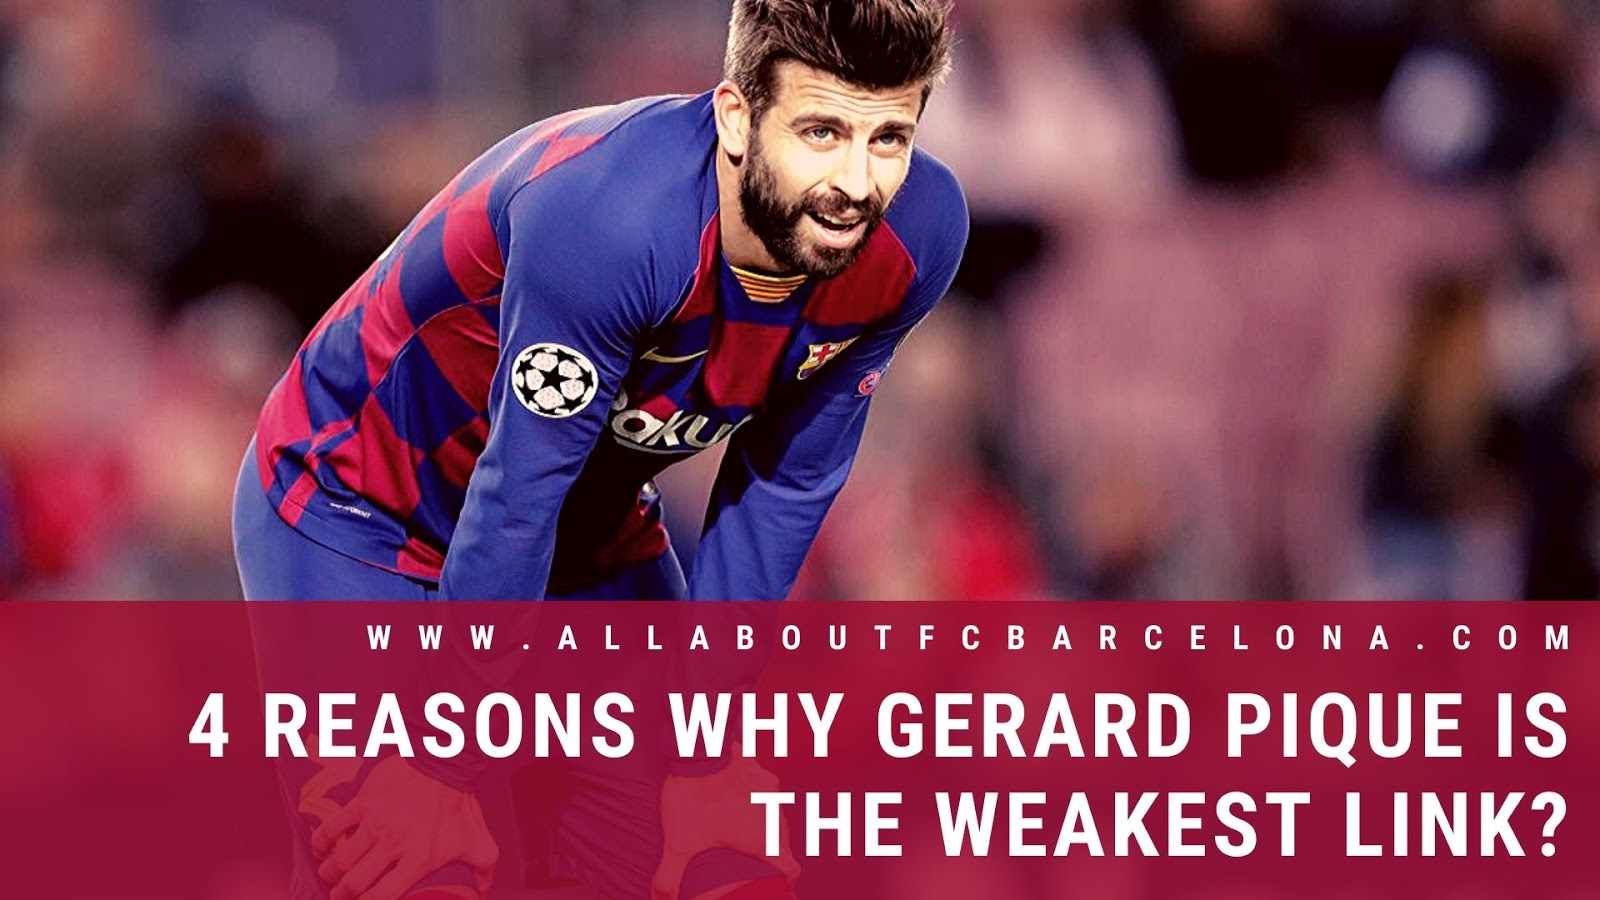 4 Reasons Why Gerard Pique is the Weakest Link?